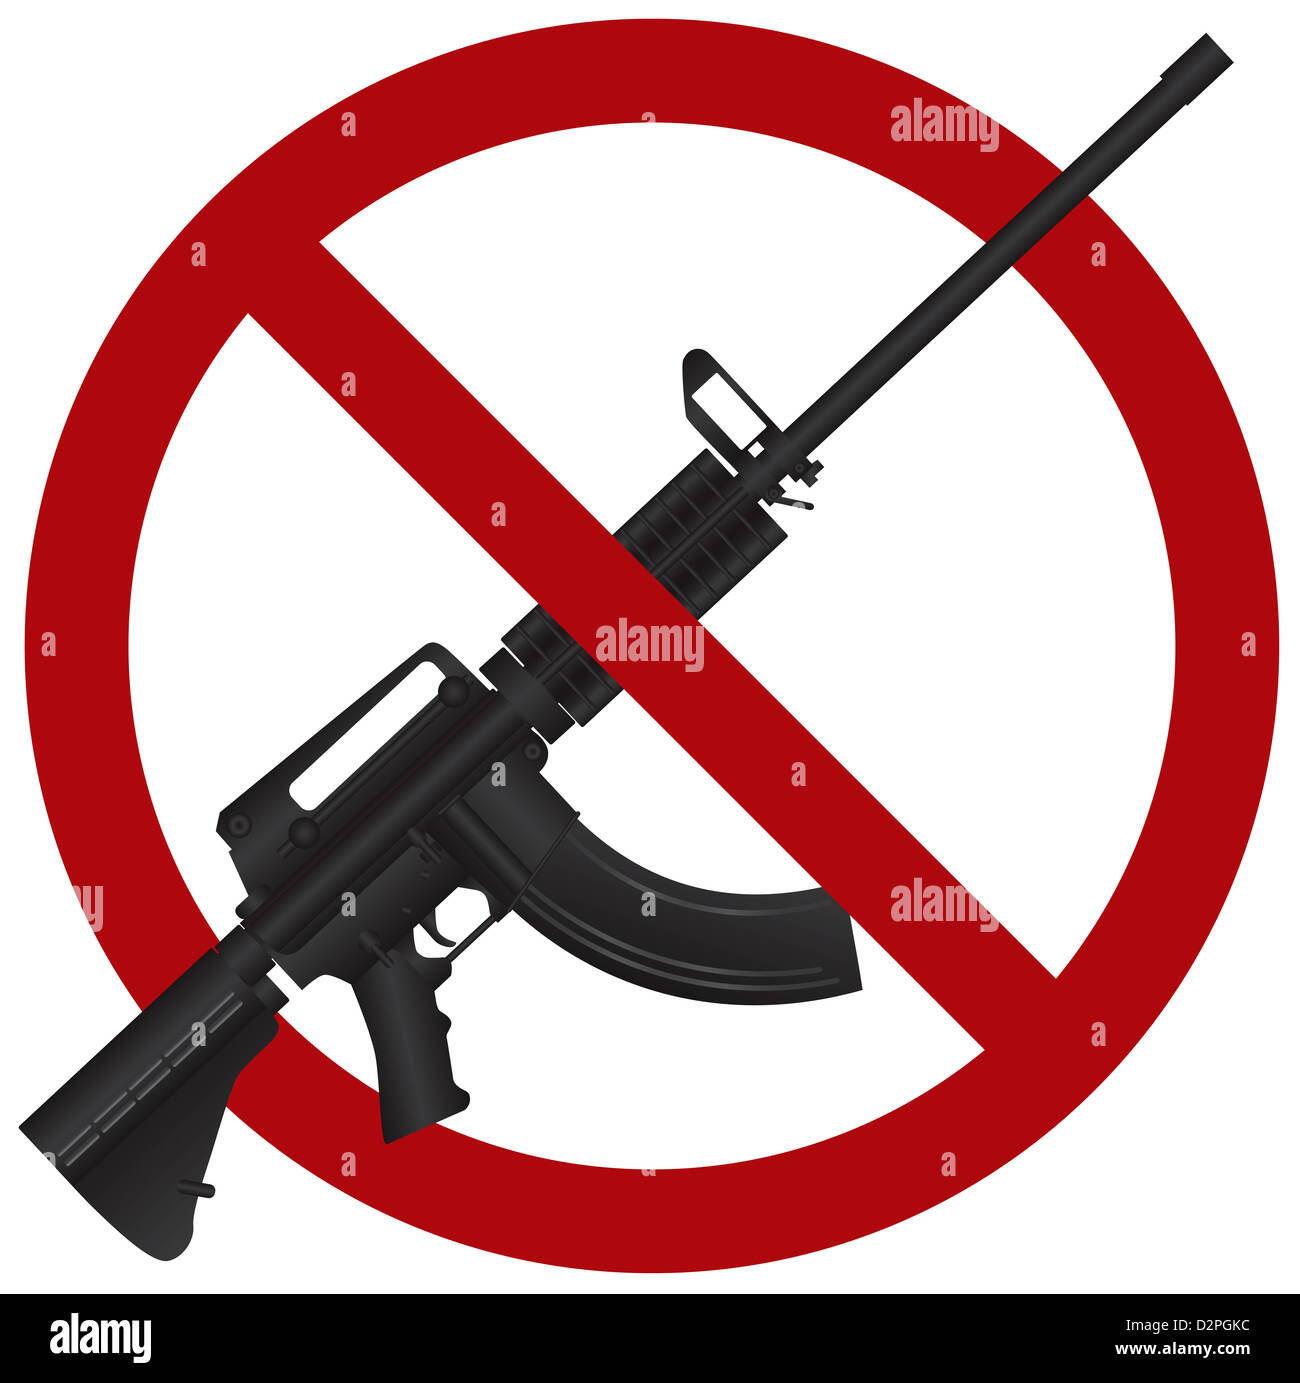 Assault Rifle AR 15 Gun Ban Symbol Isolated on White Background Illustration - Stock Image